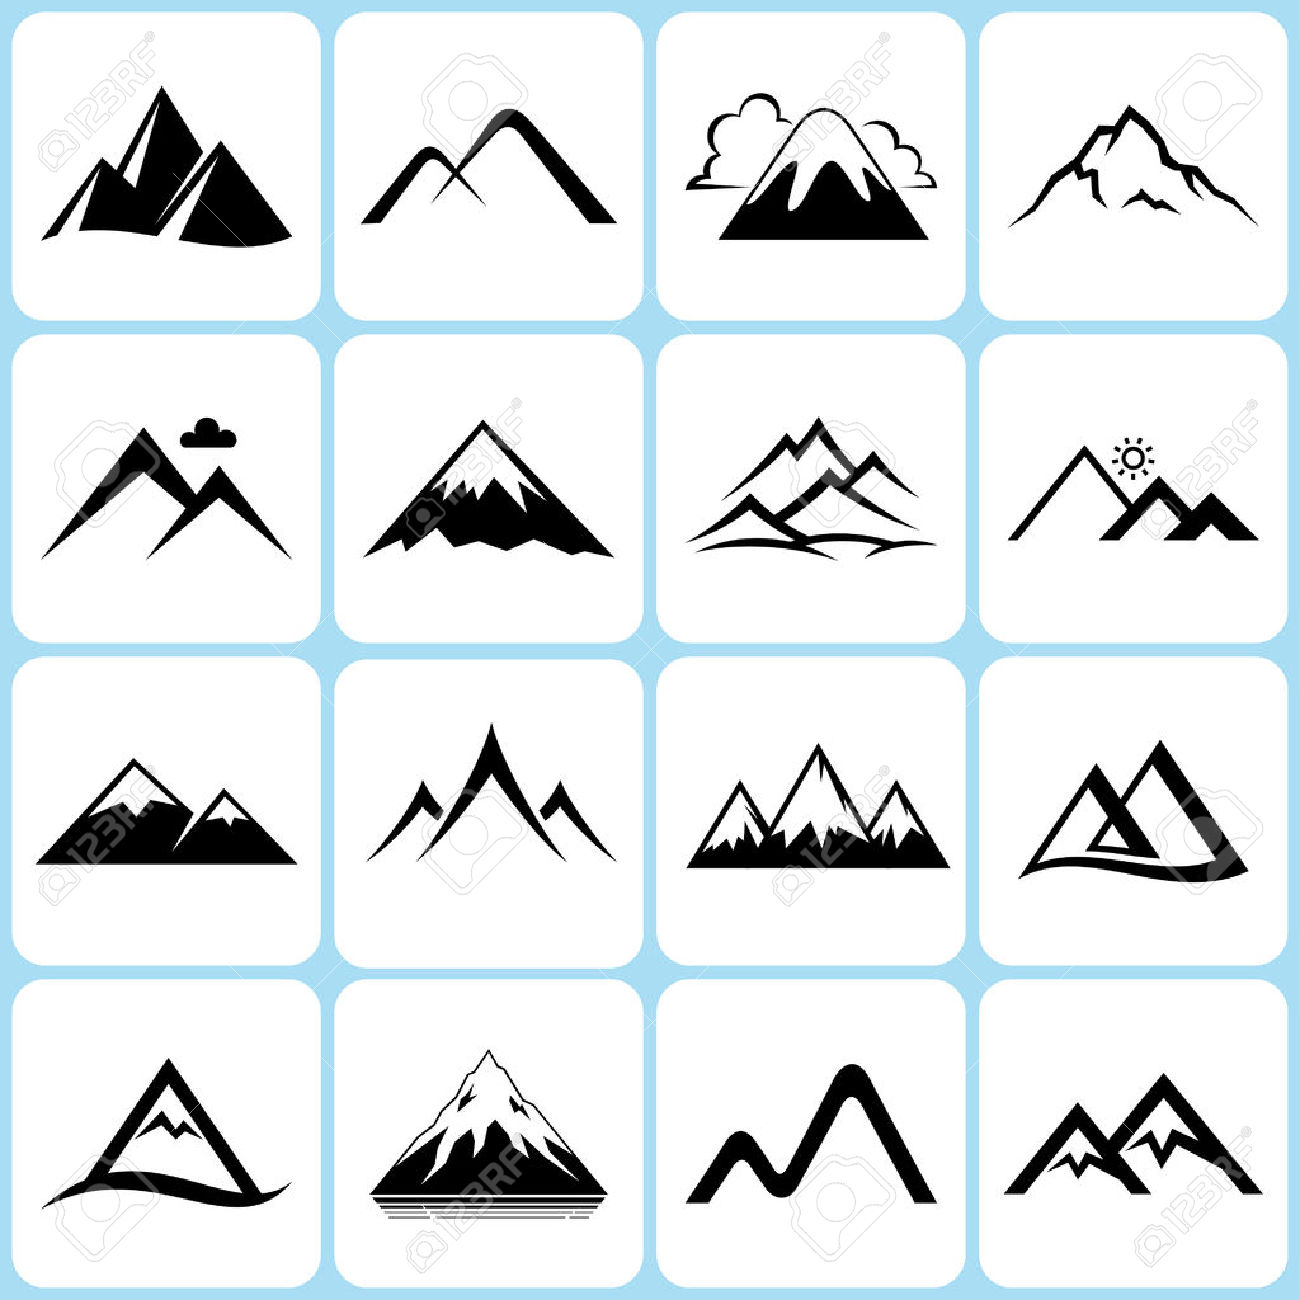 Mountain Ridge clipart Ridge Ridge clipart clipart Ridge